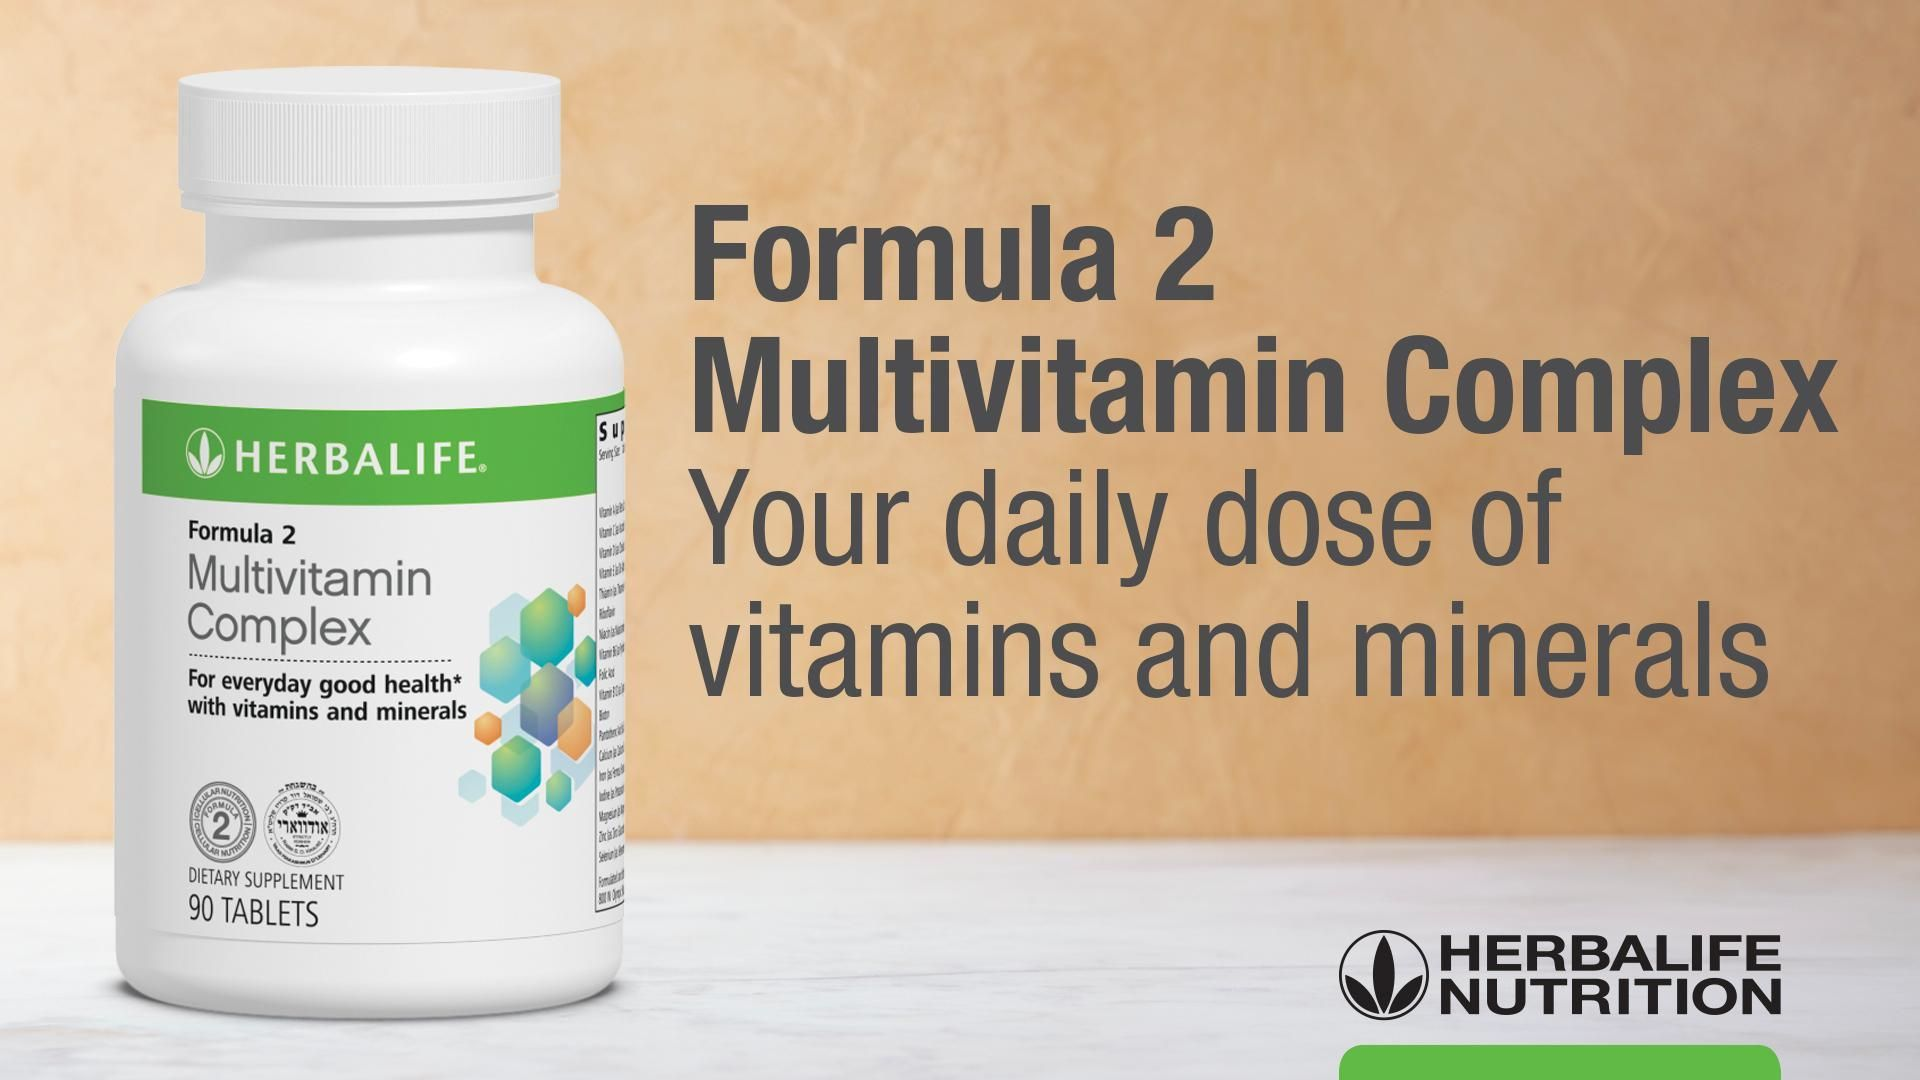 Schizandra Plus Know The Products Feature Videos Herbalife Product Videos Usen Herbalife Herbalife Nutrition Club Herbalife Tips